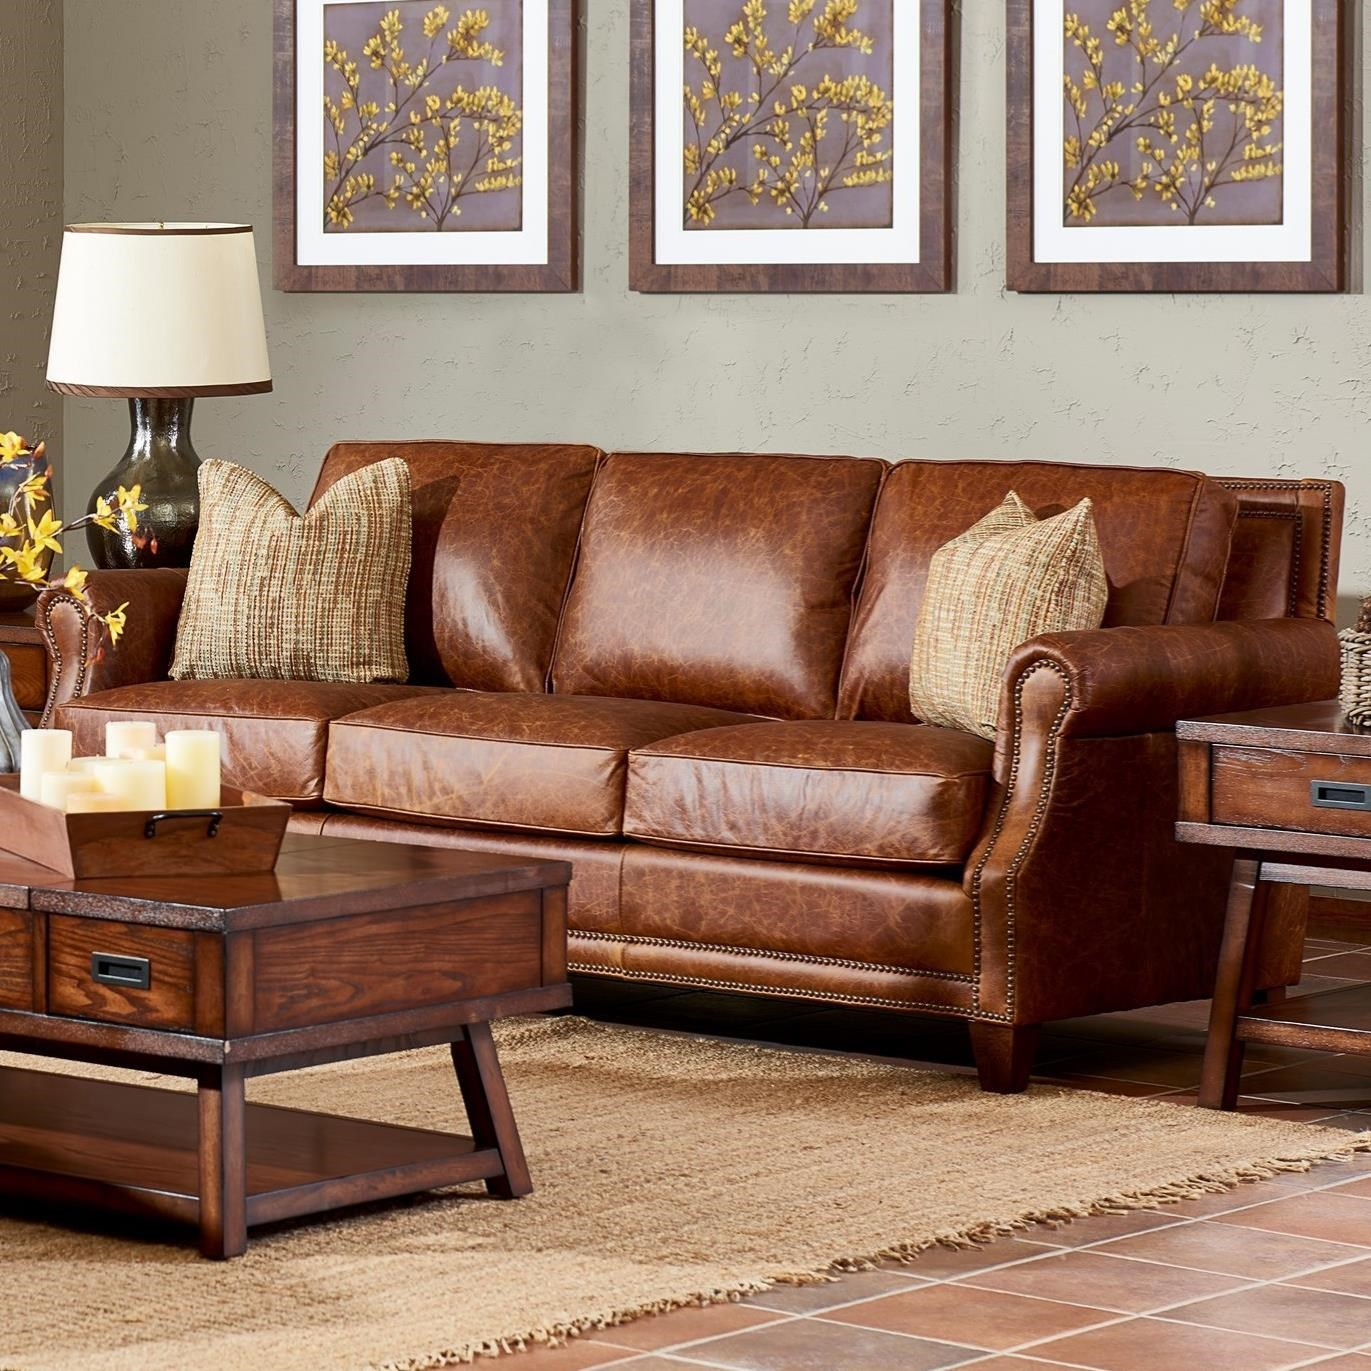 Klaussner york classically styled sofa with nail trim and arm pillows wayside furniture sofas - Sofa york ...